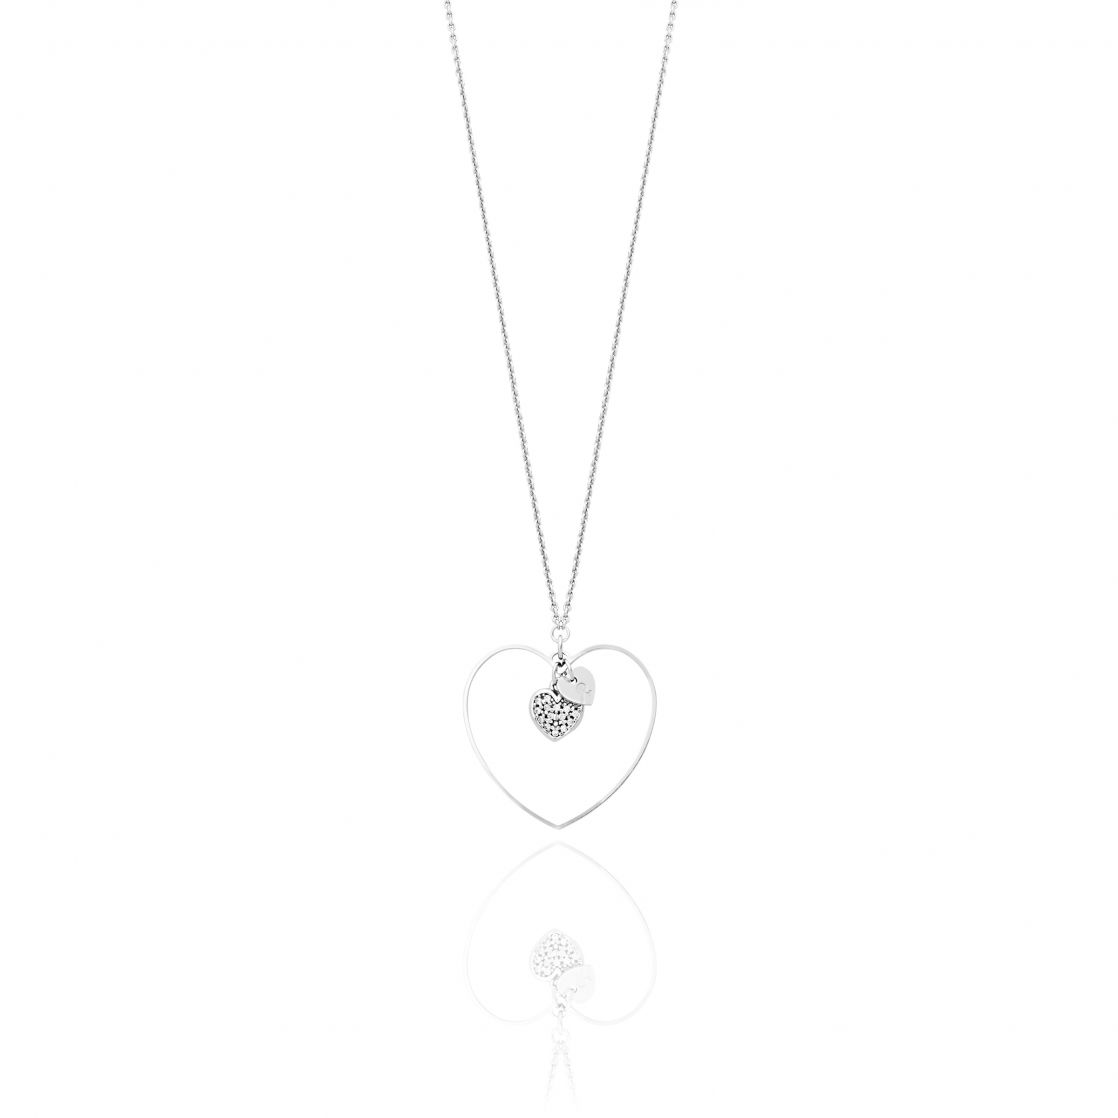 NECKLACE WITH DOUBLE HEART